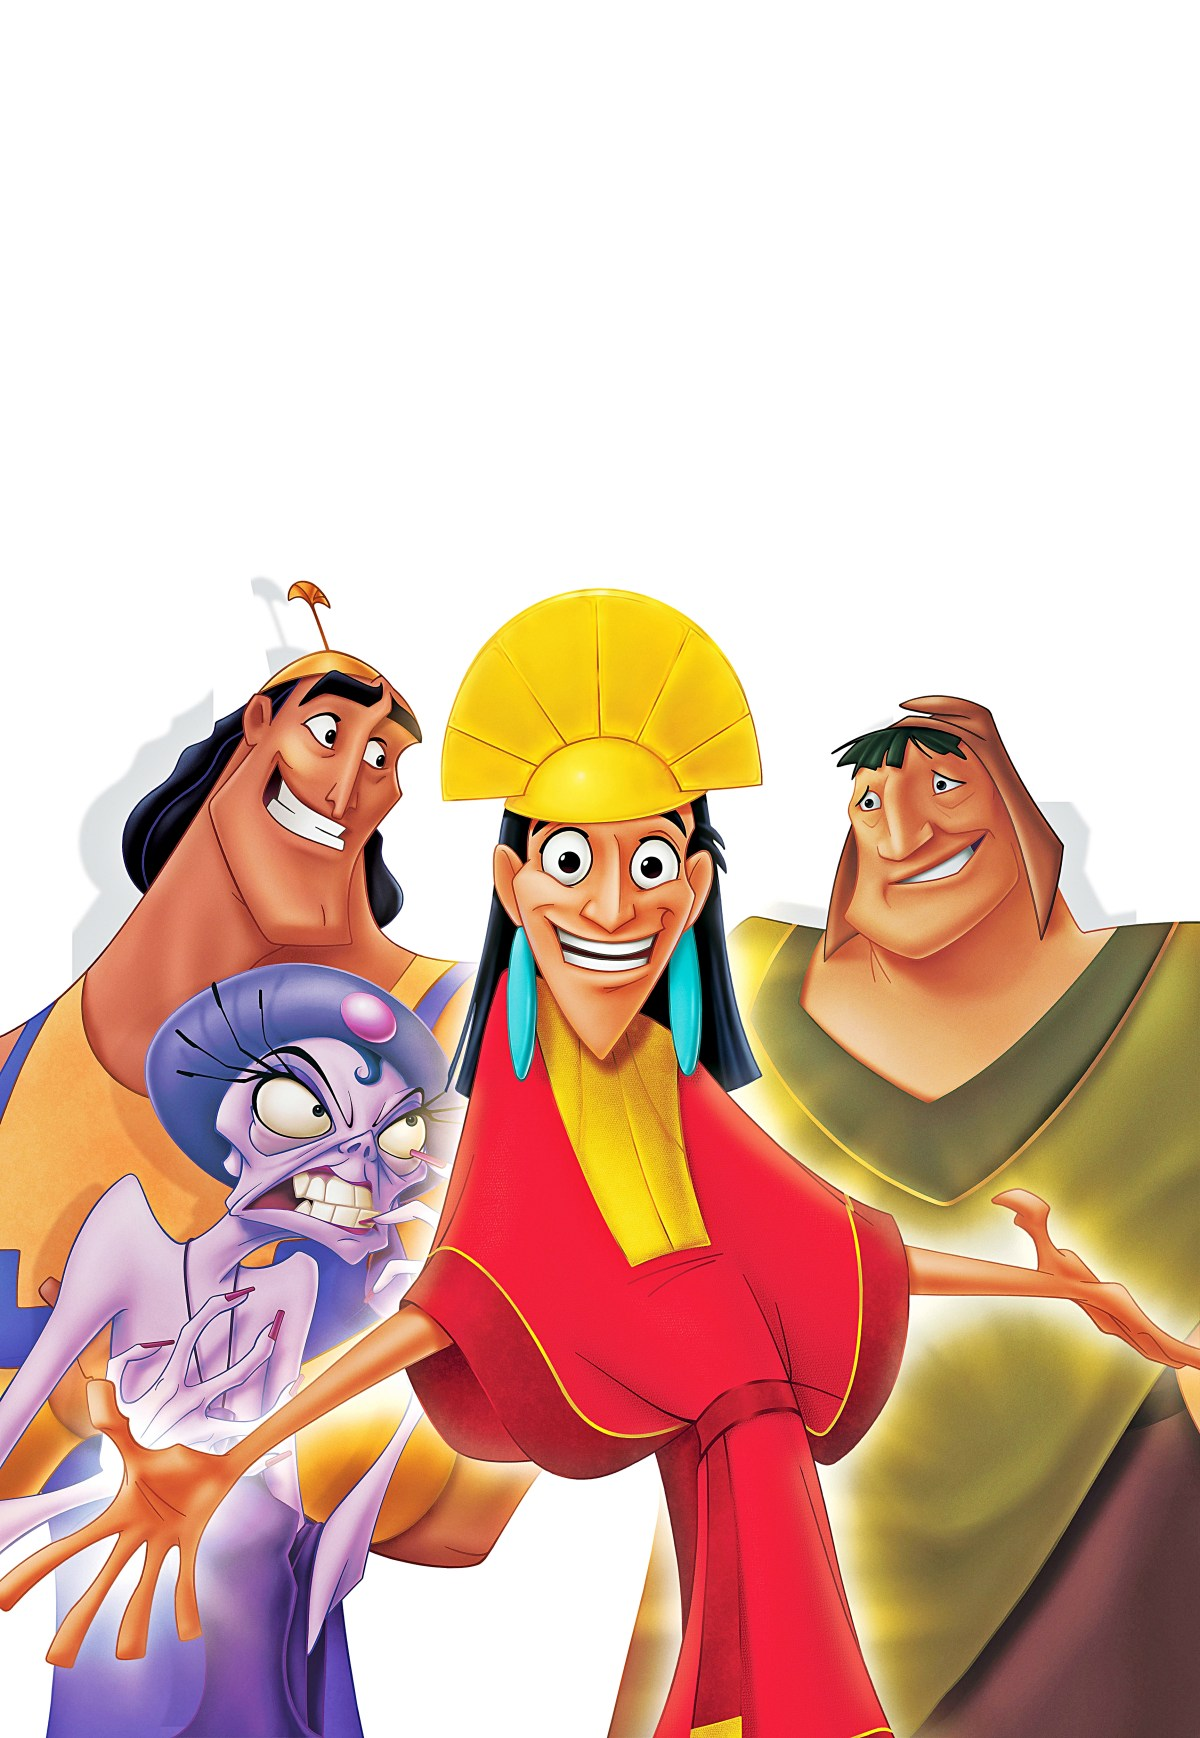 The Emperor's New Groove Disney movie poster with Yzma, Kronk and Pacha.